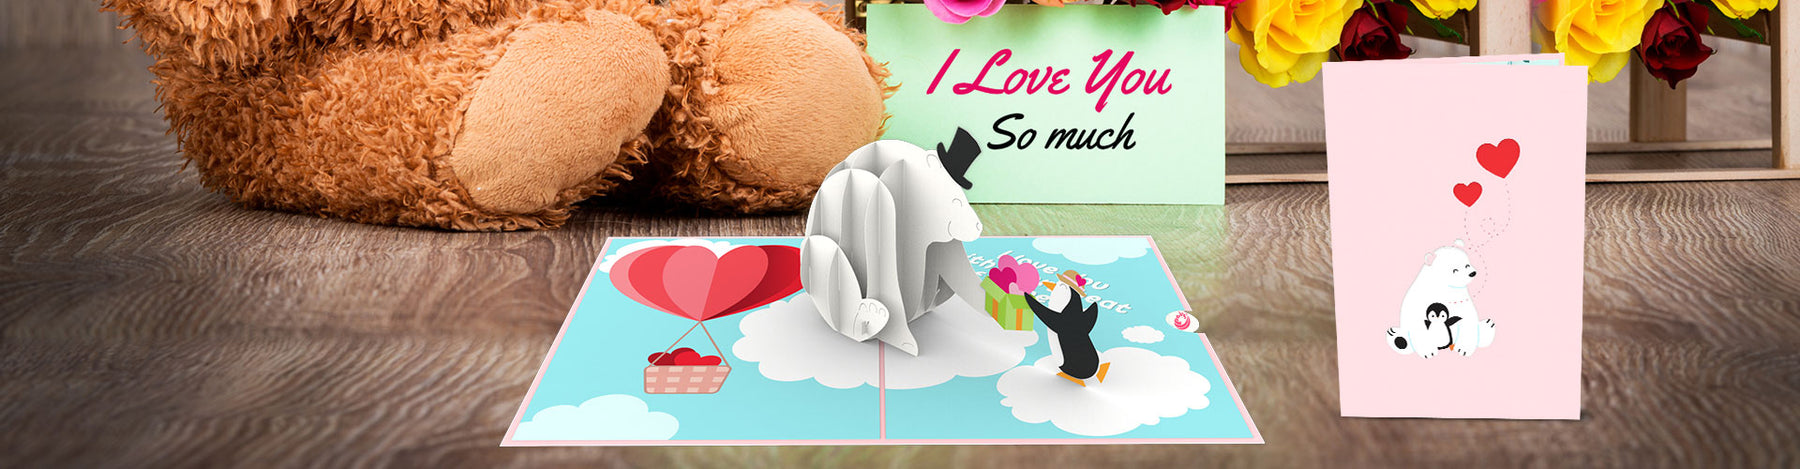 i love you pop up card banner